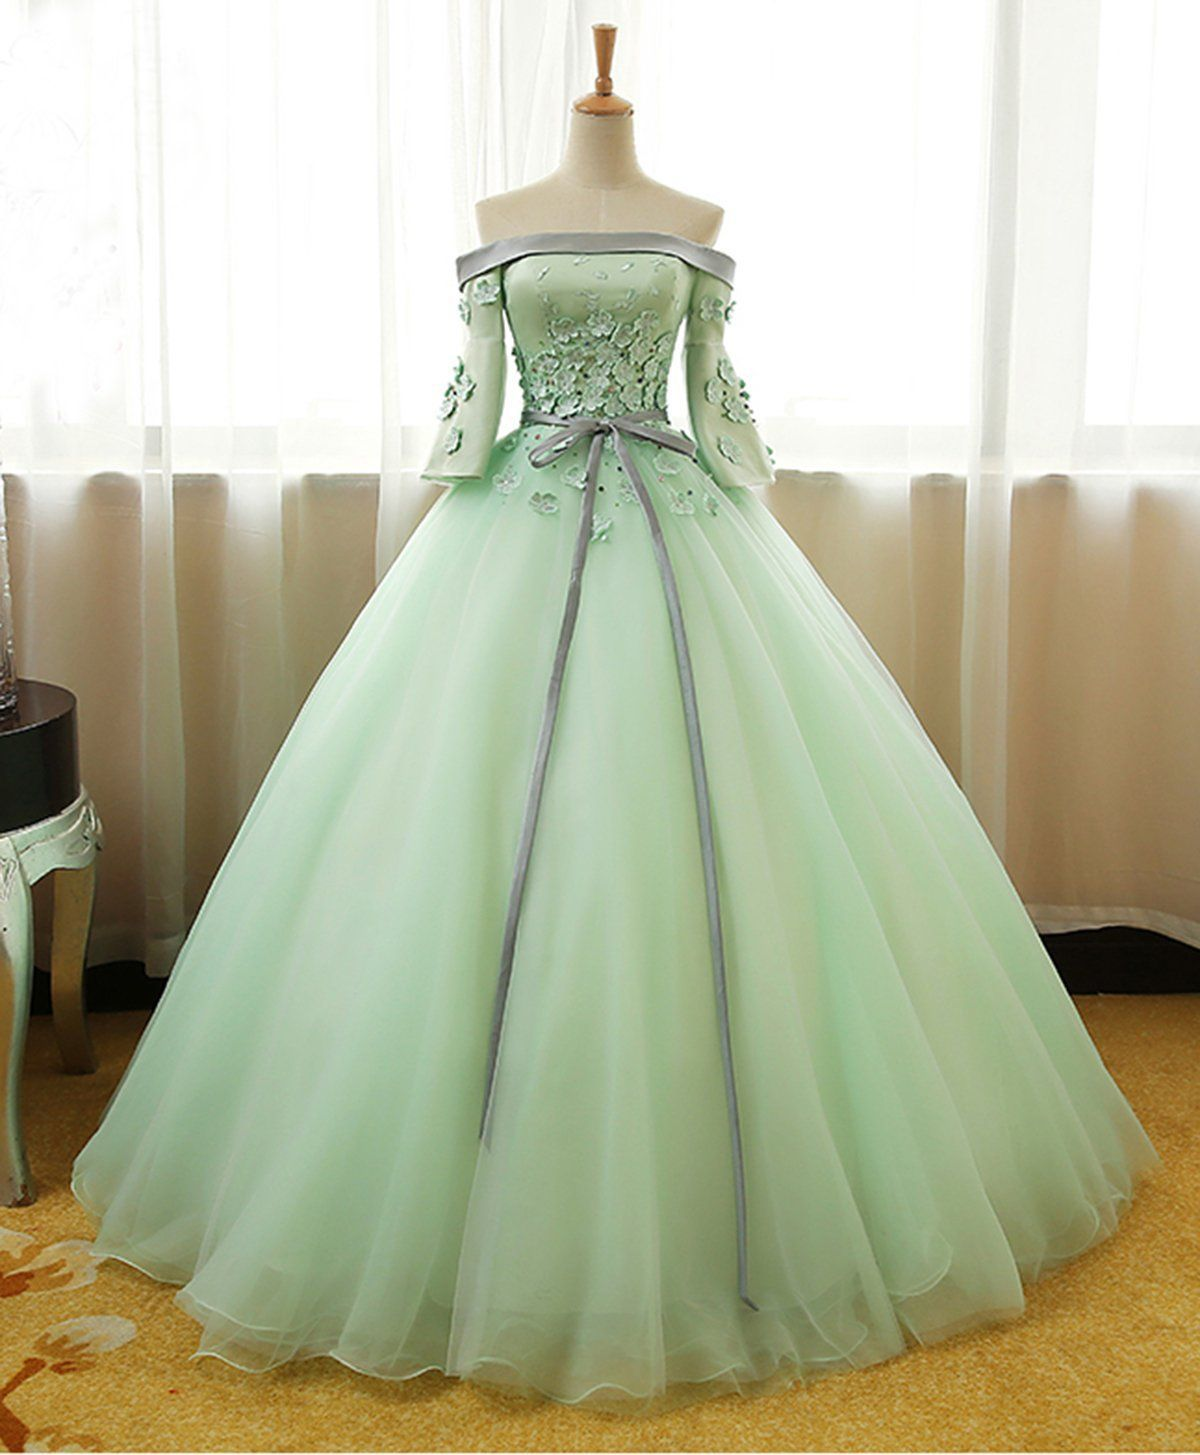 Mint Green Off The Shoulder Prom Dresses Applique Chiffon Evening Ball Gown Gowns Dresses Prom Dresses [ 1455 x 1200 Pixel ]